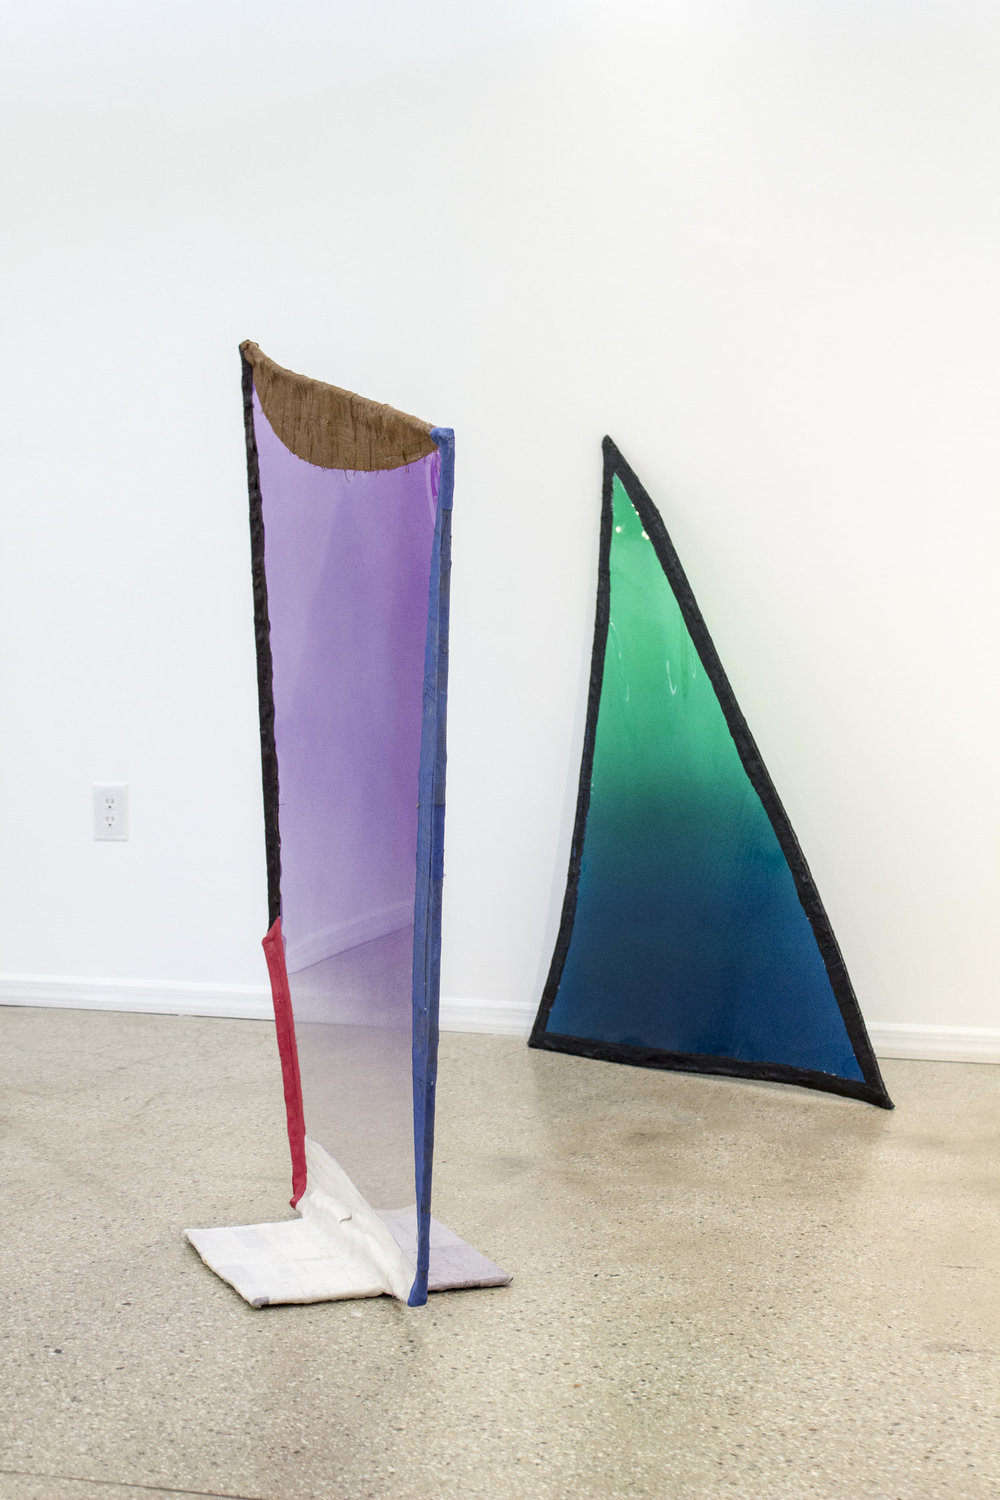 From left to right: Fabienne Lasserre,  Untitled Purple  and  Untitled Green , 2017